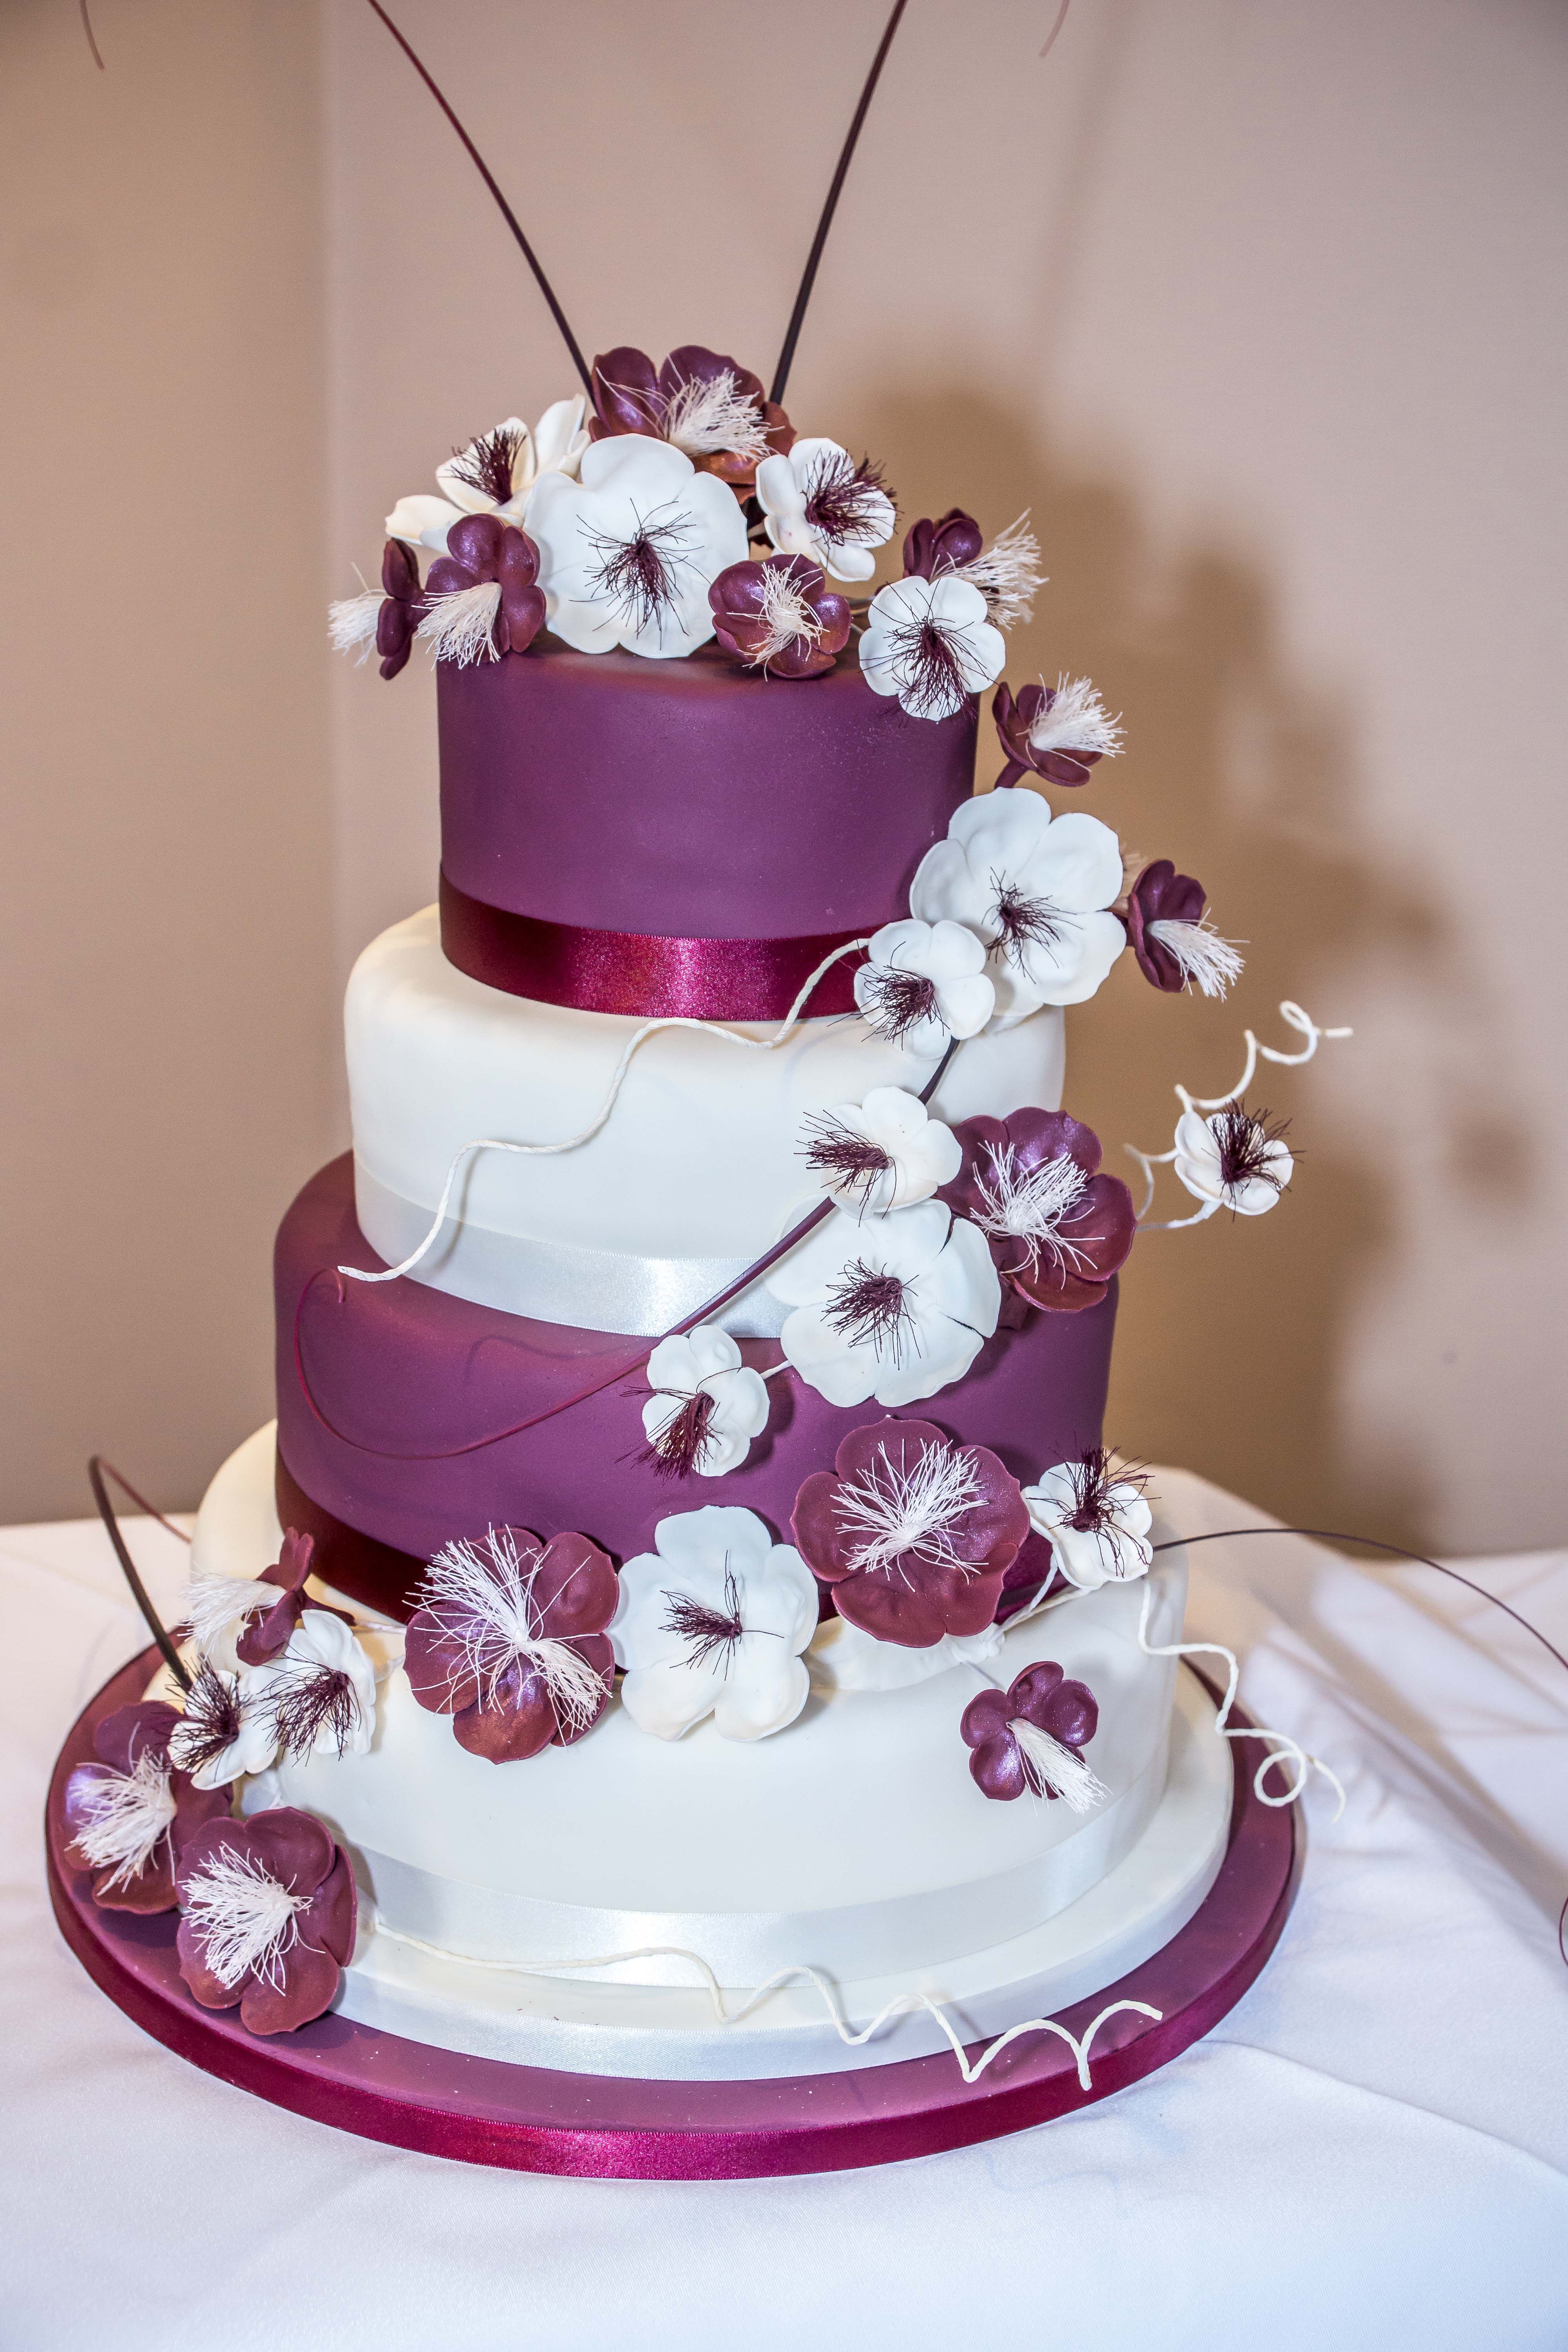 Flowery Wedding cake with a white and burgundy colour scheme.